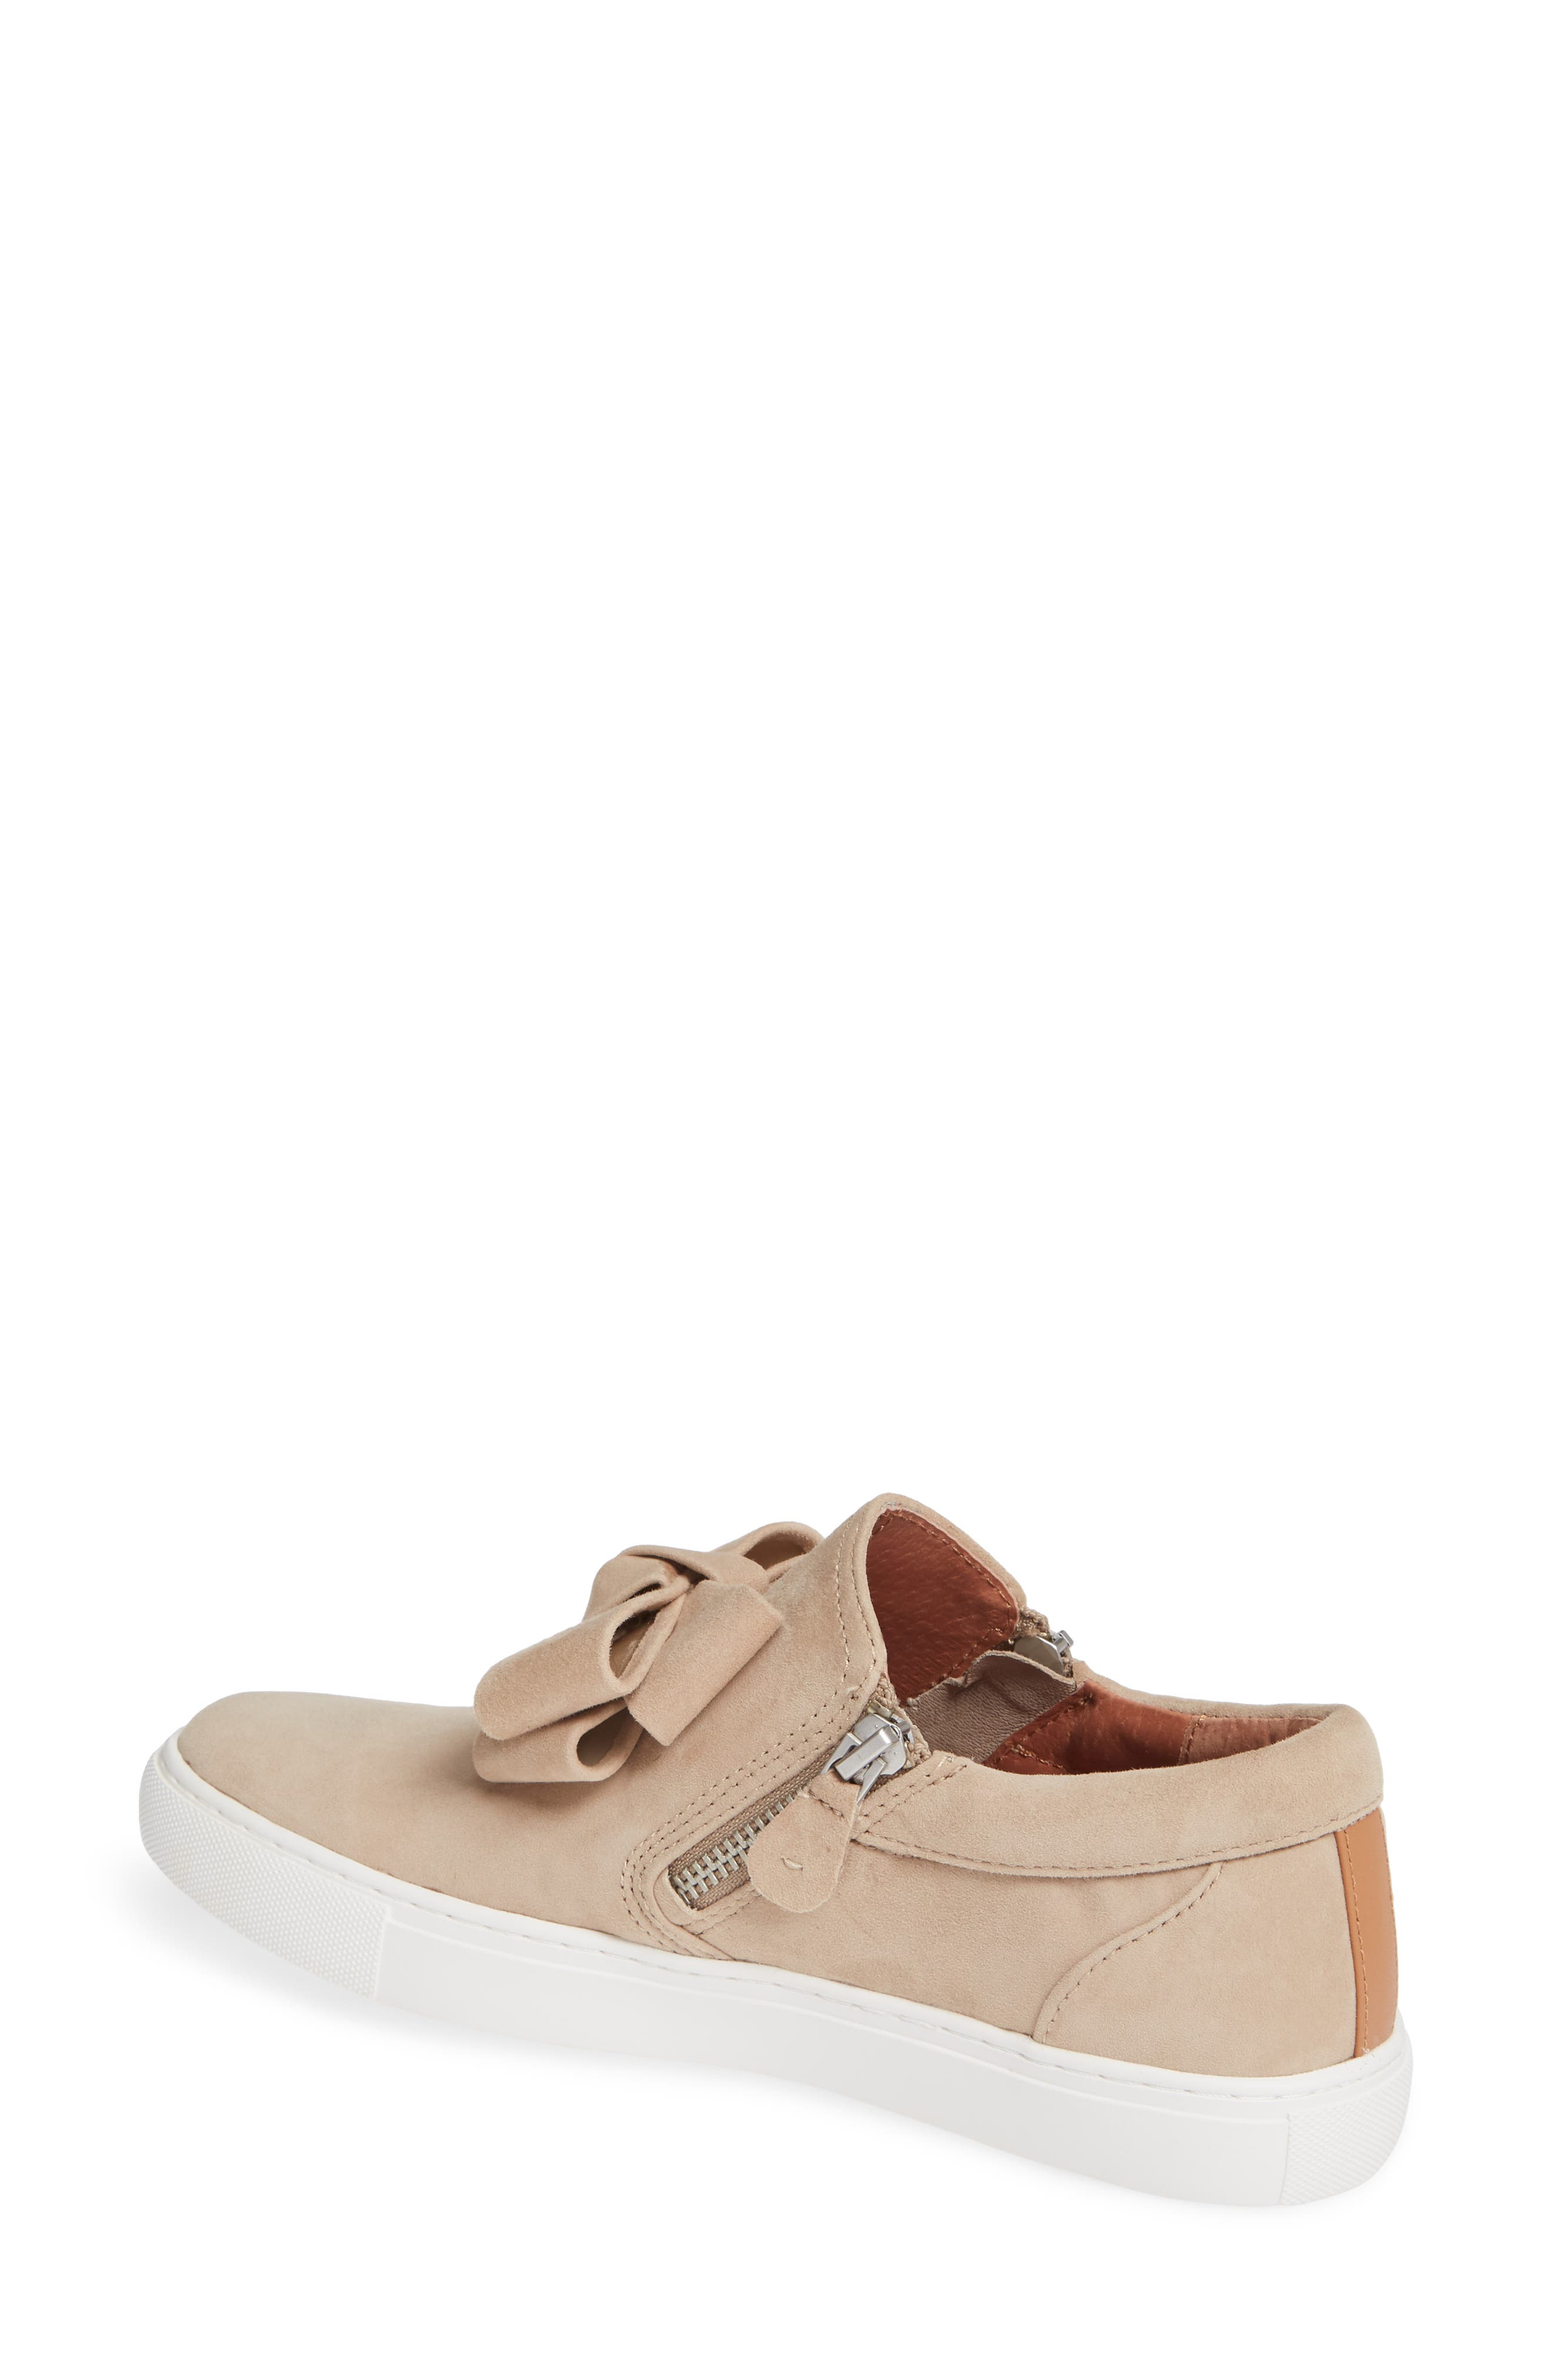 GENTLE SOULS BY KENNETH COLE, Lowe Bow Sneaker, Alternate thumbnail 2, color, CAFE SUEDE